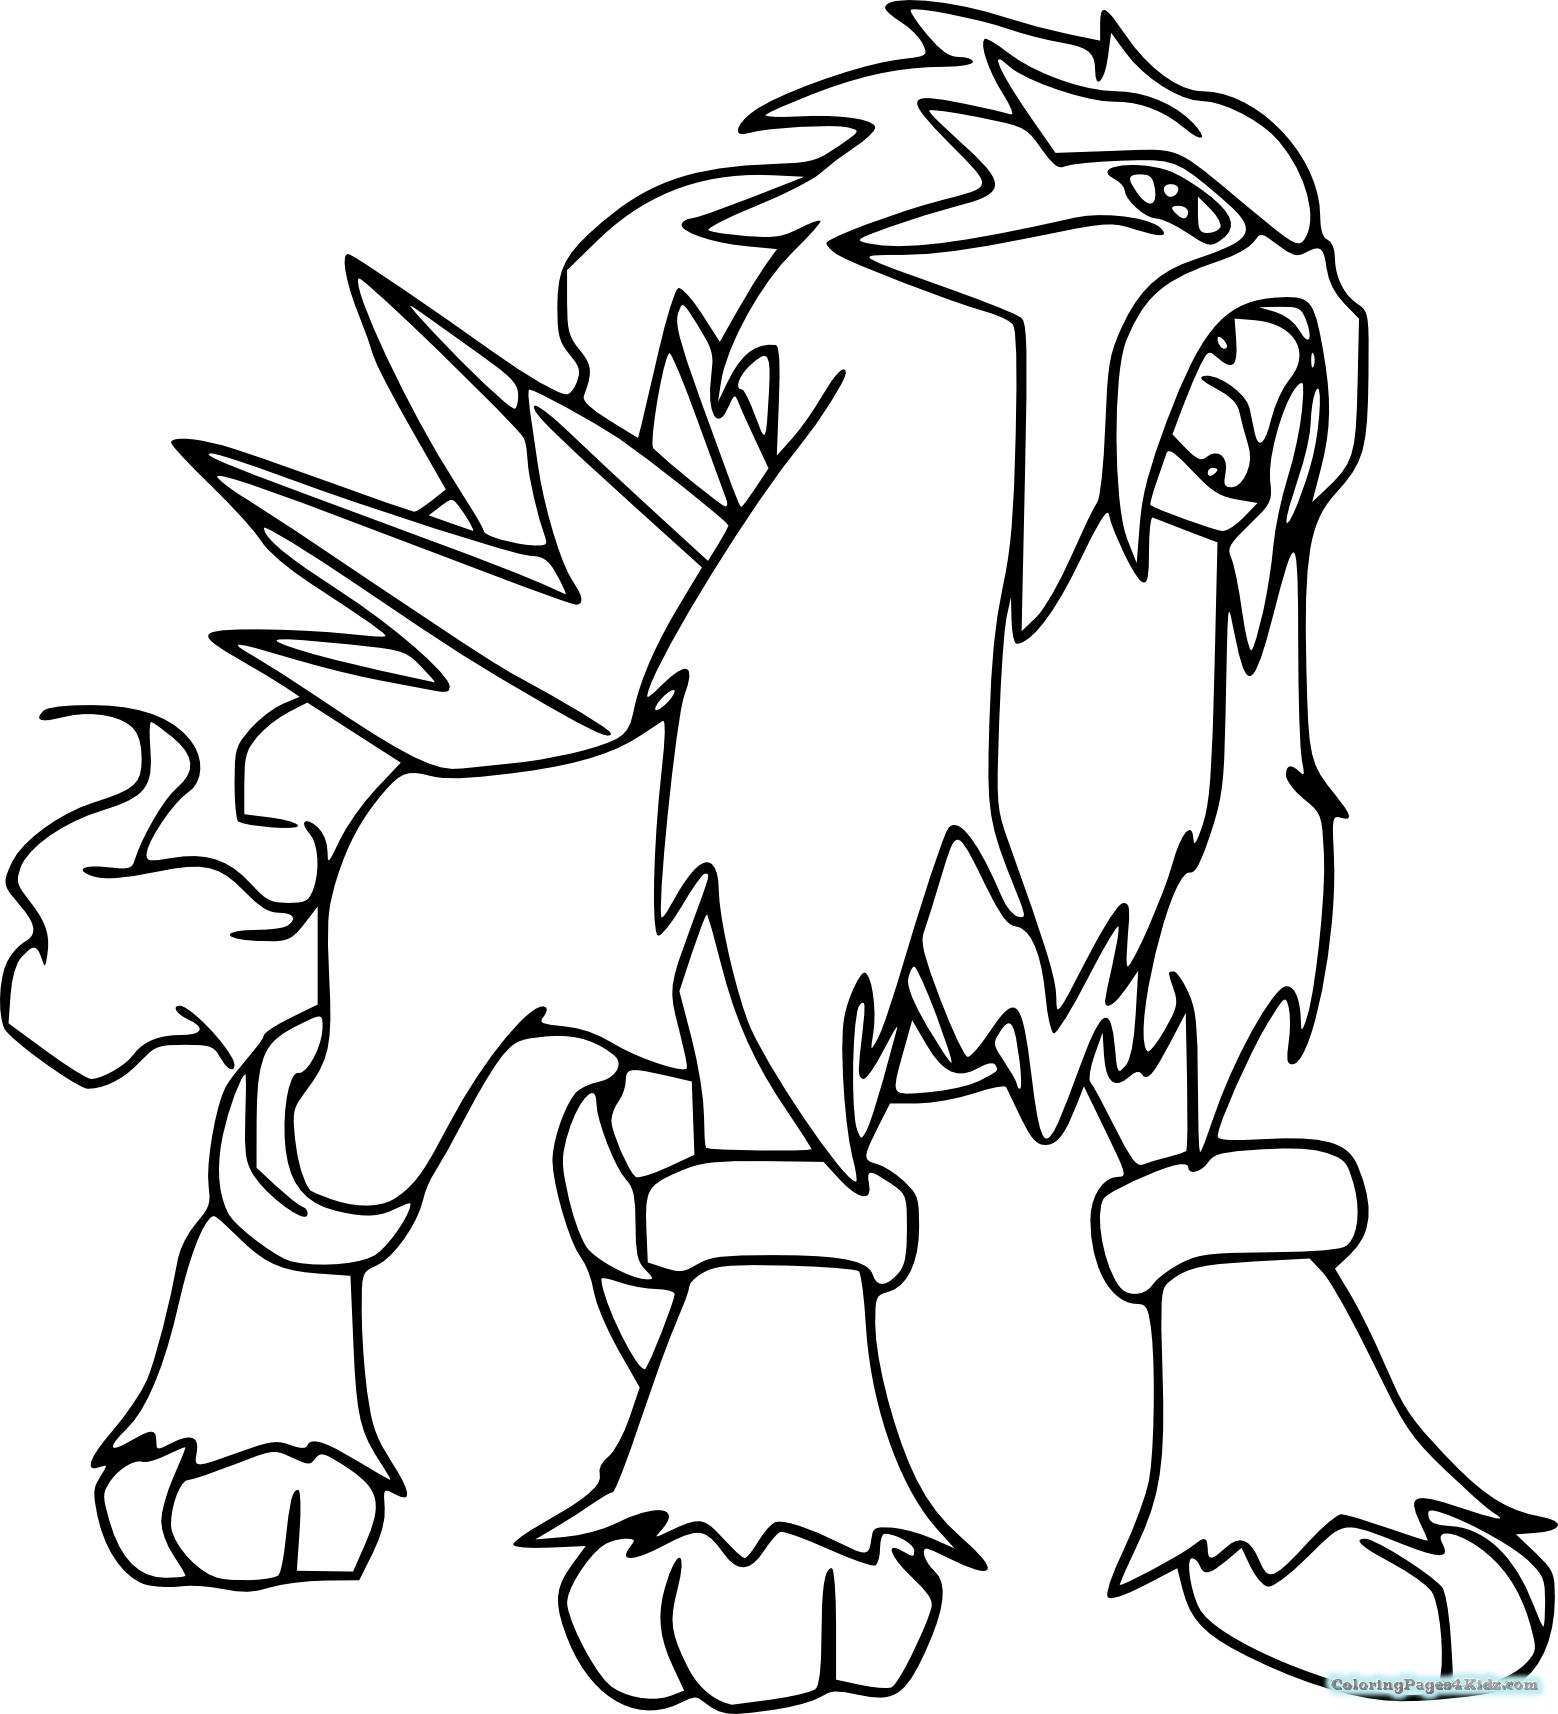 1558x1714 Legendary Pokemon Coloring Pages Coloring Pages For Kids